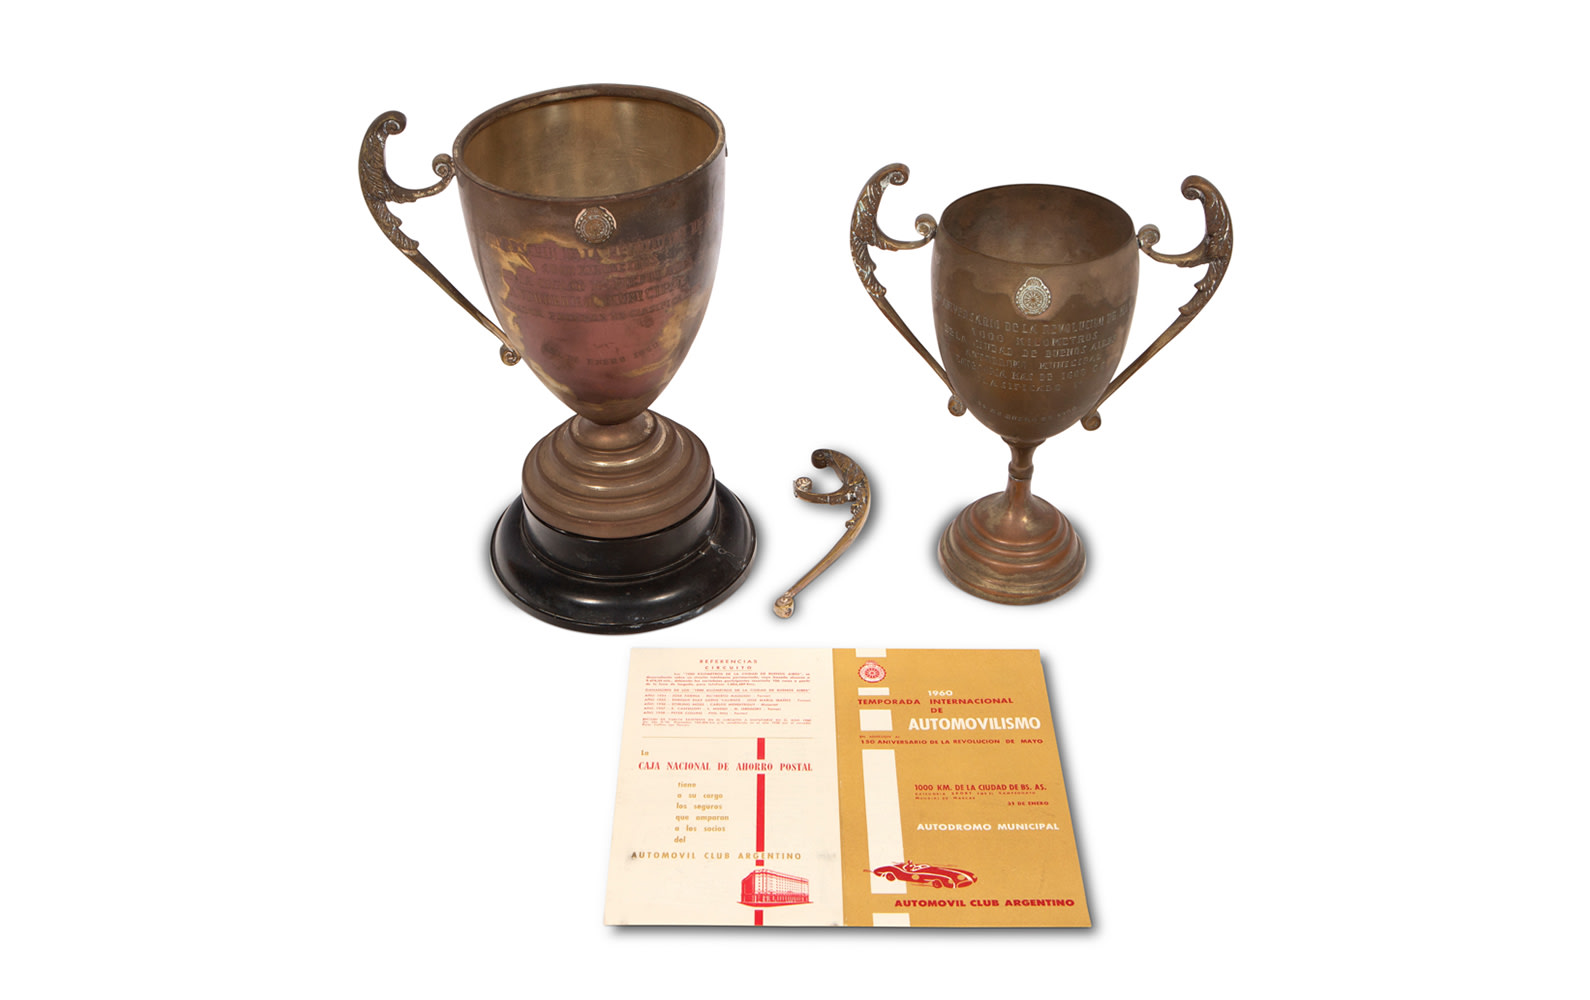 1960 Buenos Aires 1000 Km Entry Form, Two Trophies, and Pin